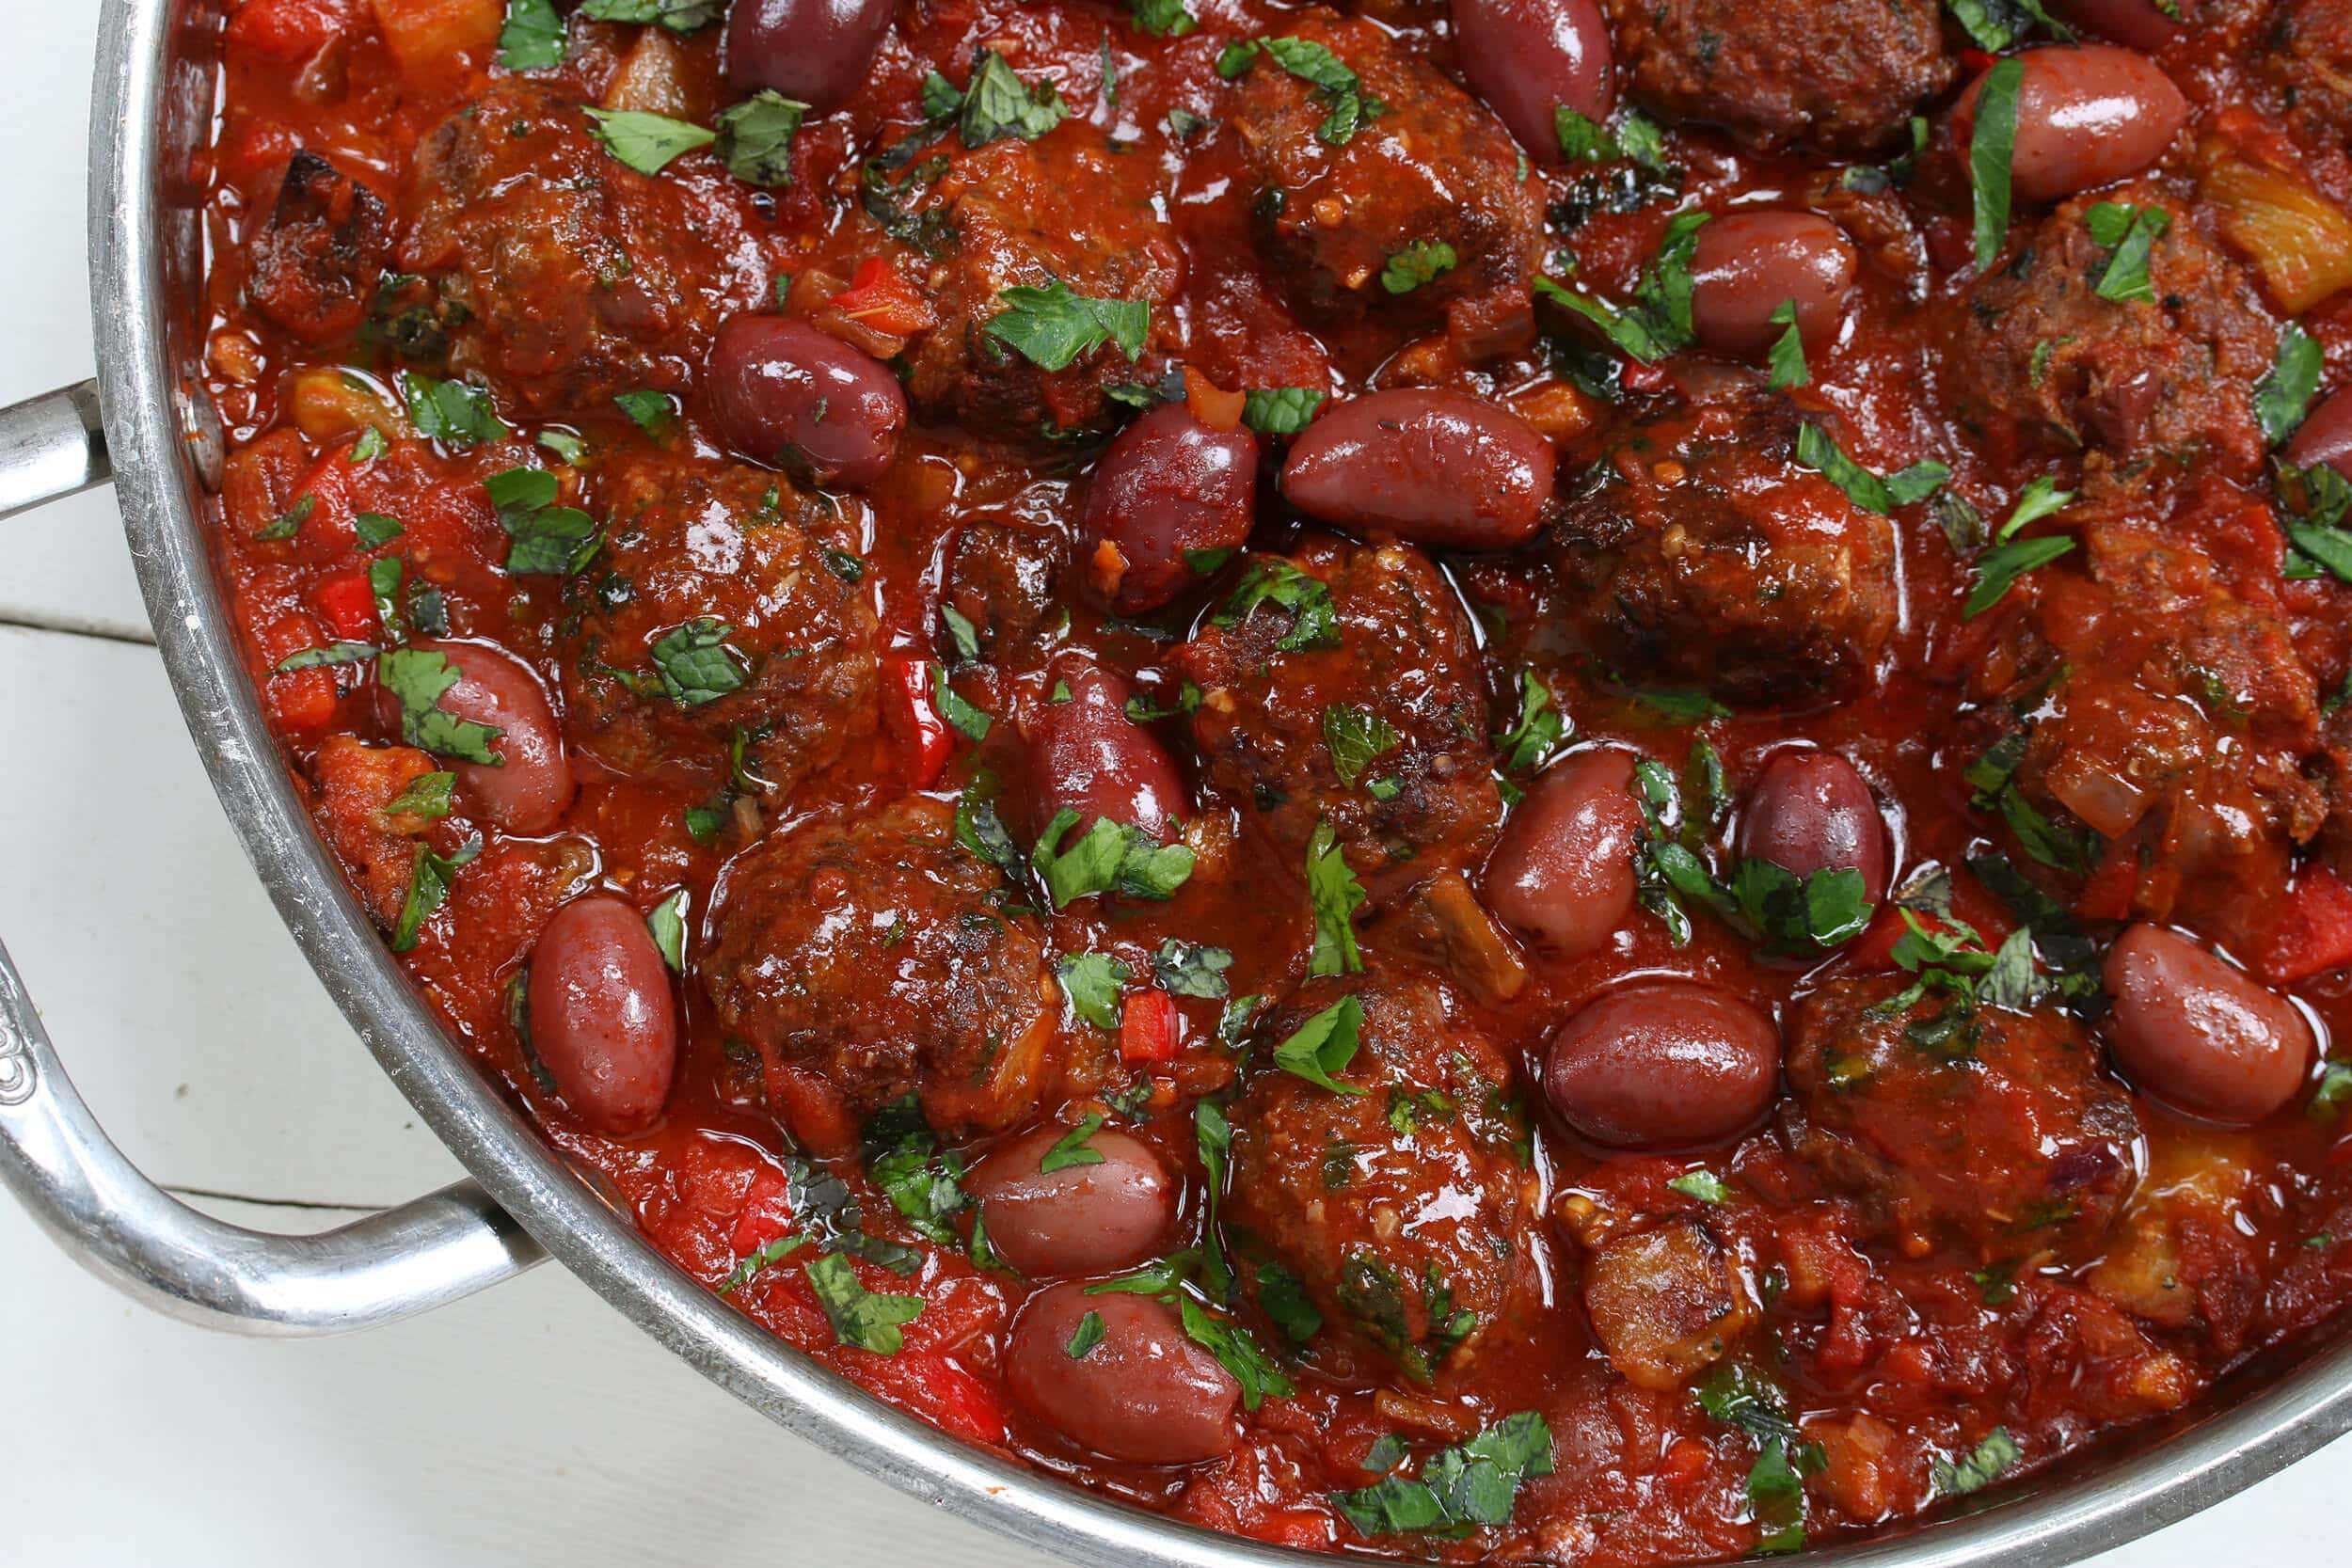 Greek Meatballs - The Daring Gourmet